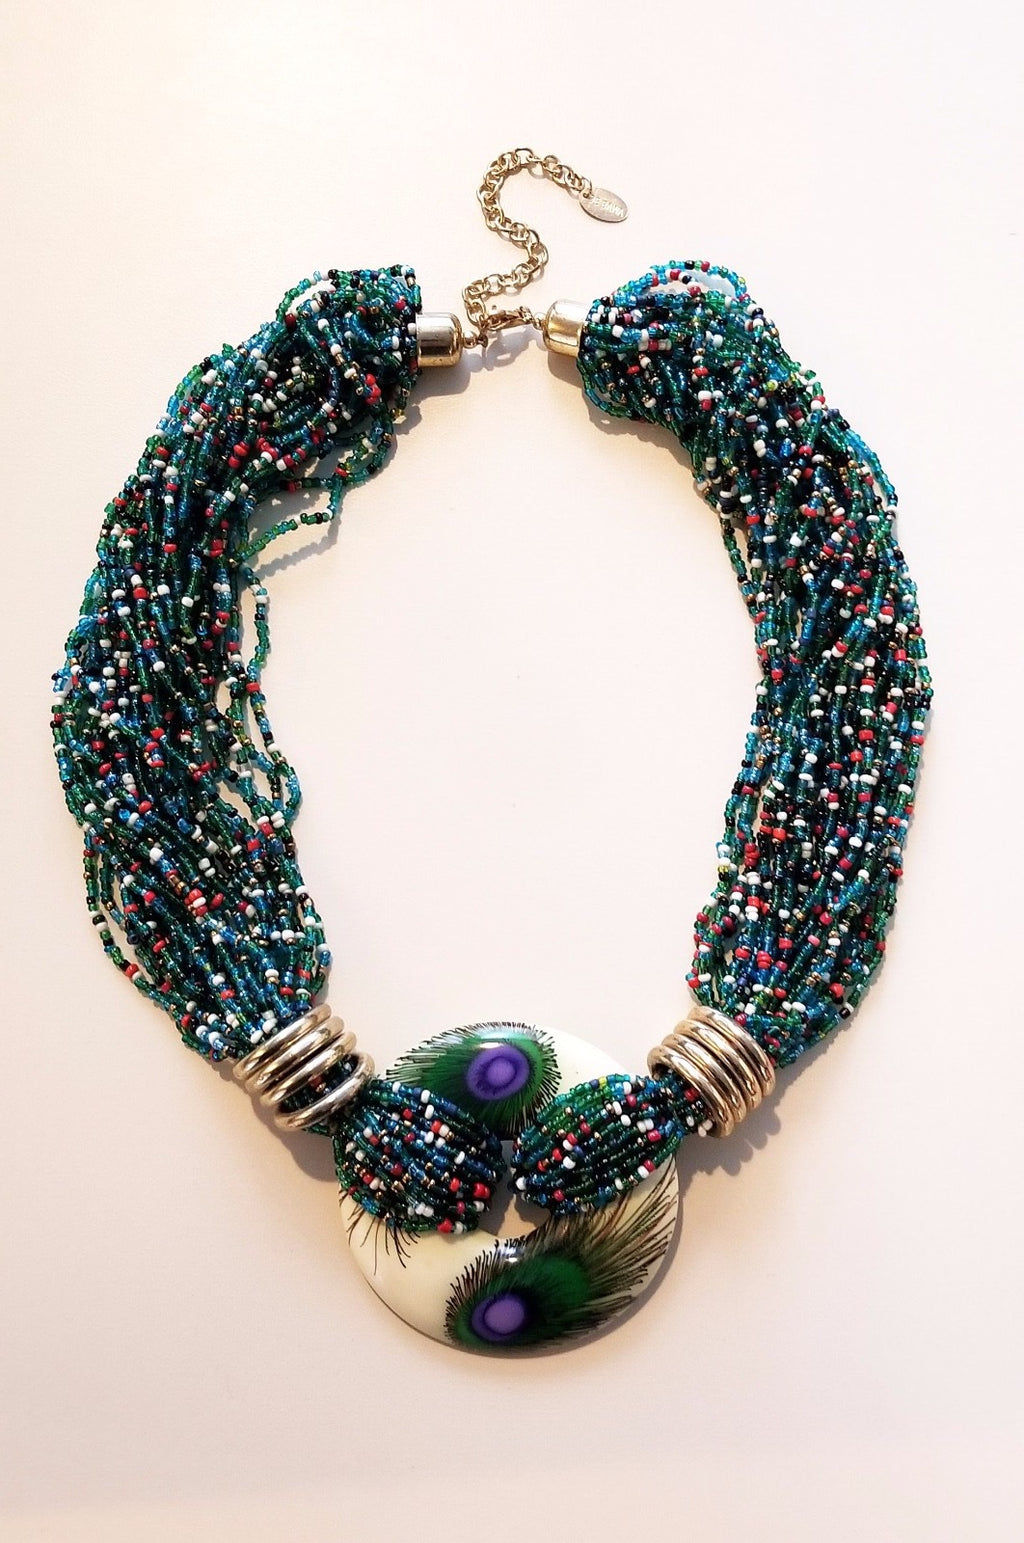 Peacock Elegance Statement Necklace - De Bawa Inc.